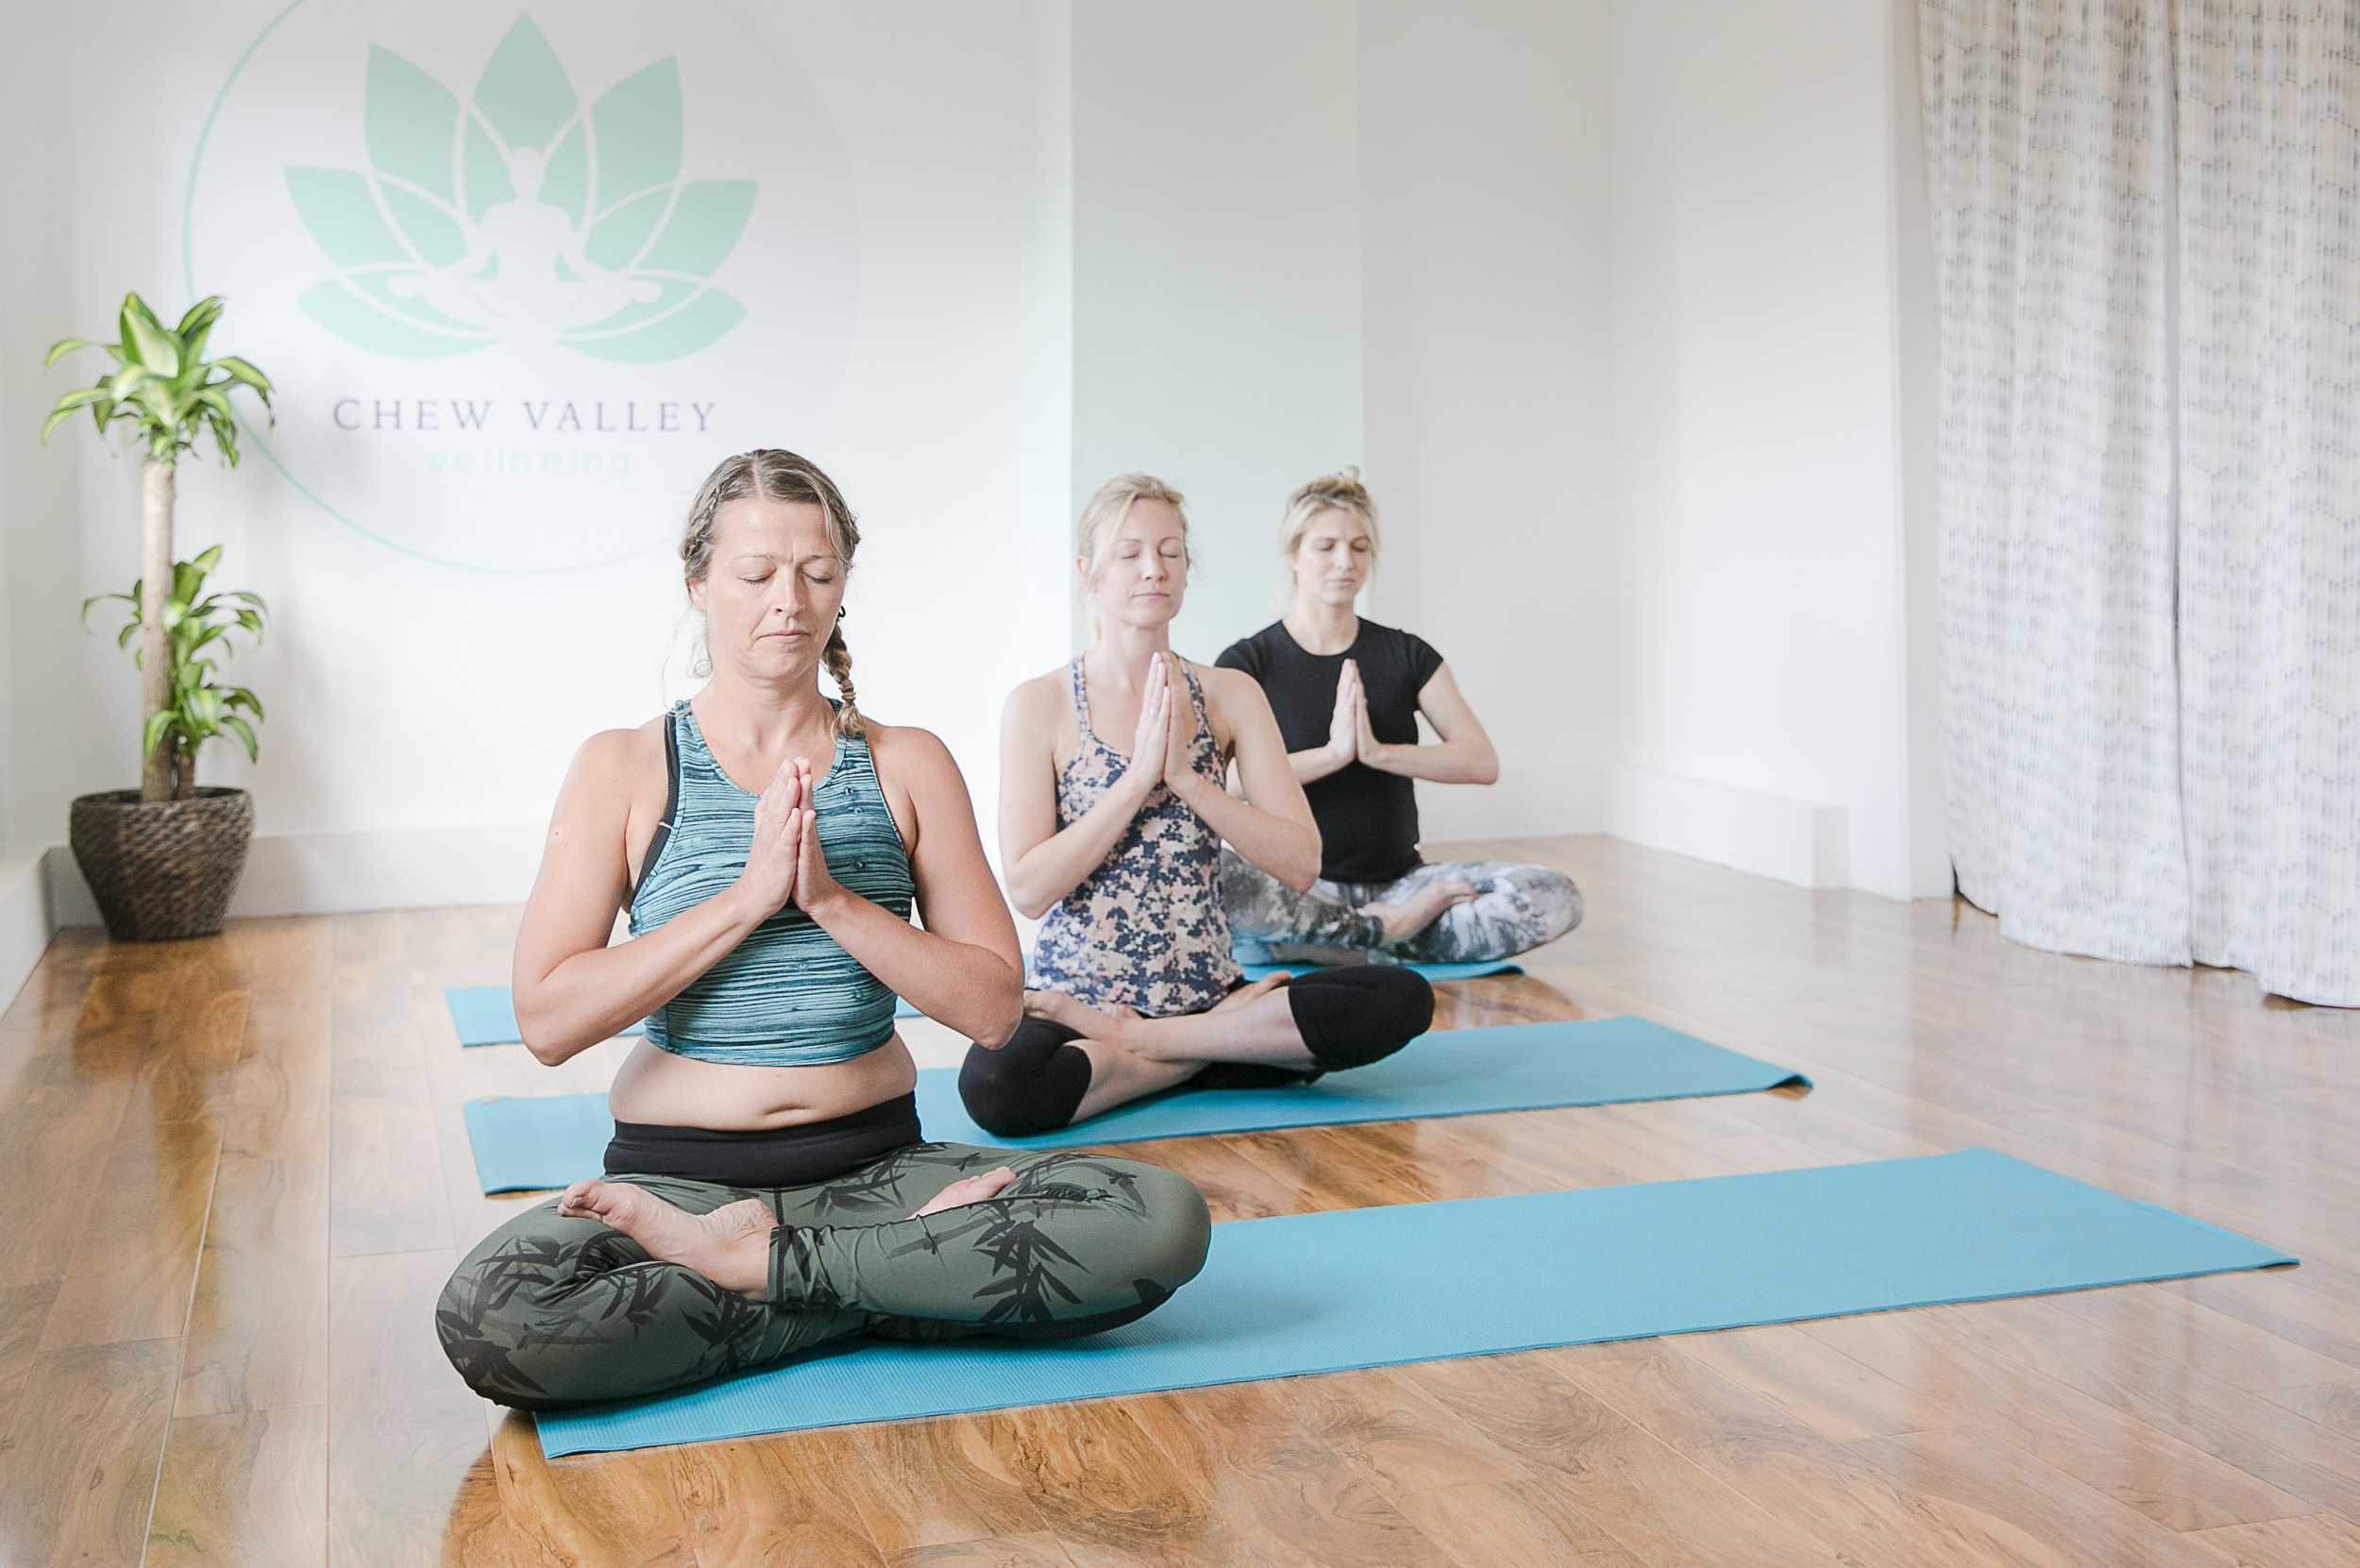 Chew Valley Wellbeing yoga and massage Bristol by Chloe Edwards Photography-1925.jpg